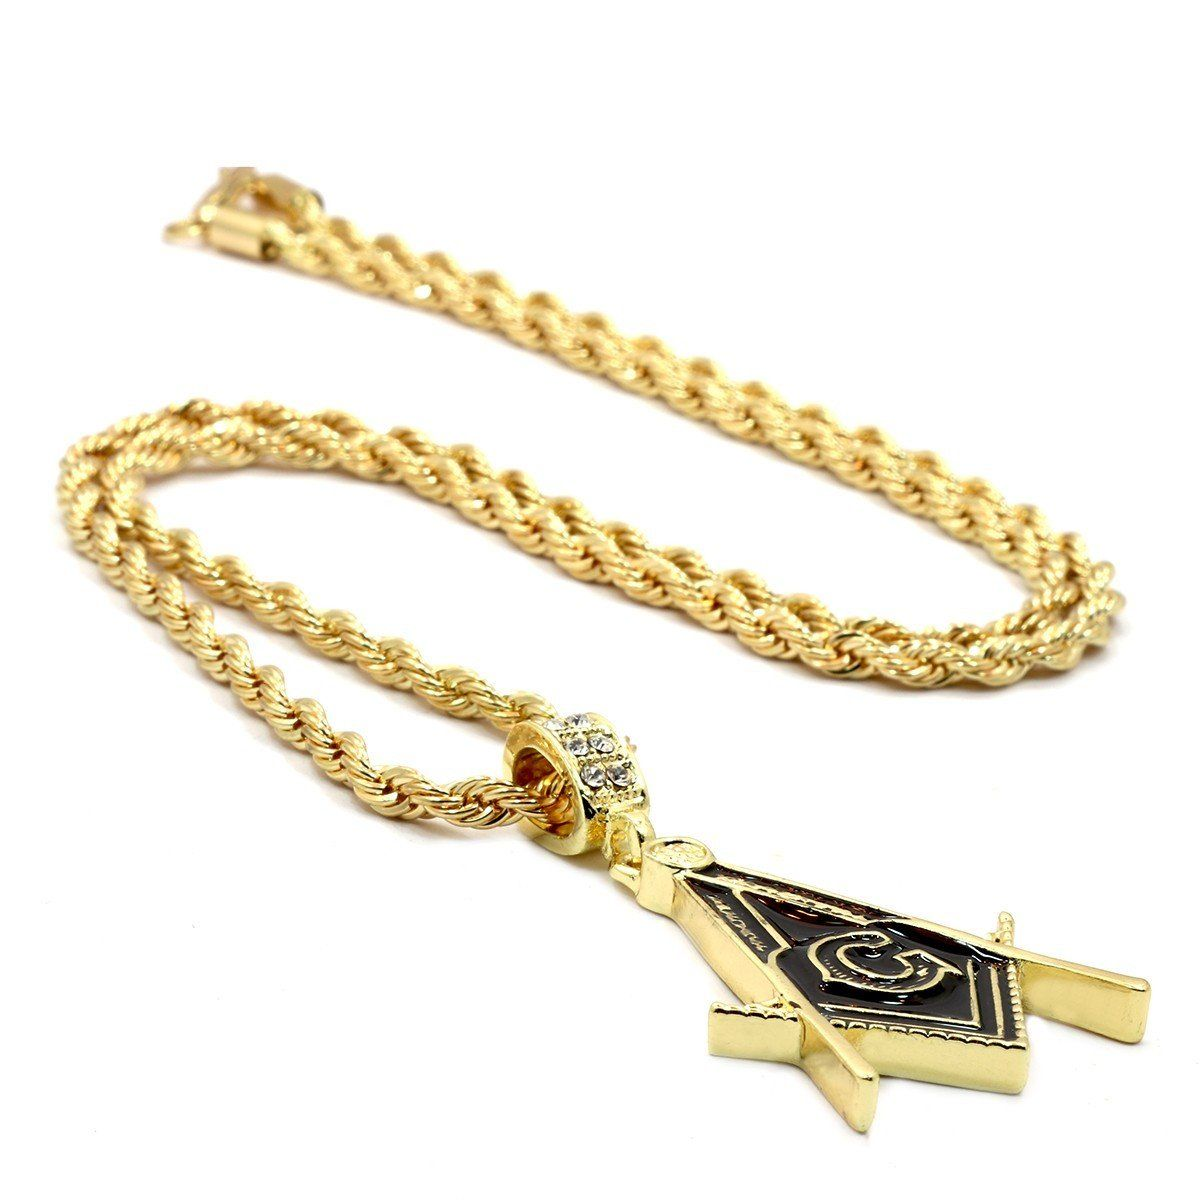 MASON PENDANT WITH GOLD ROPE CHAIN